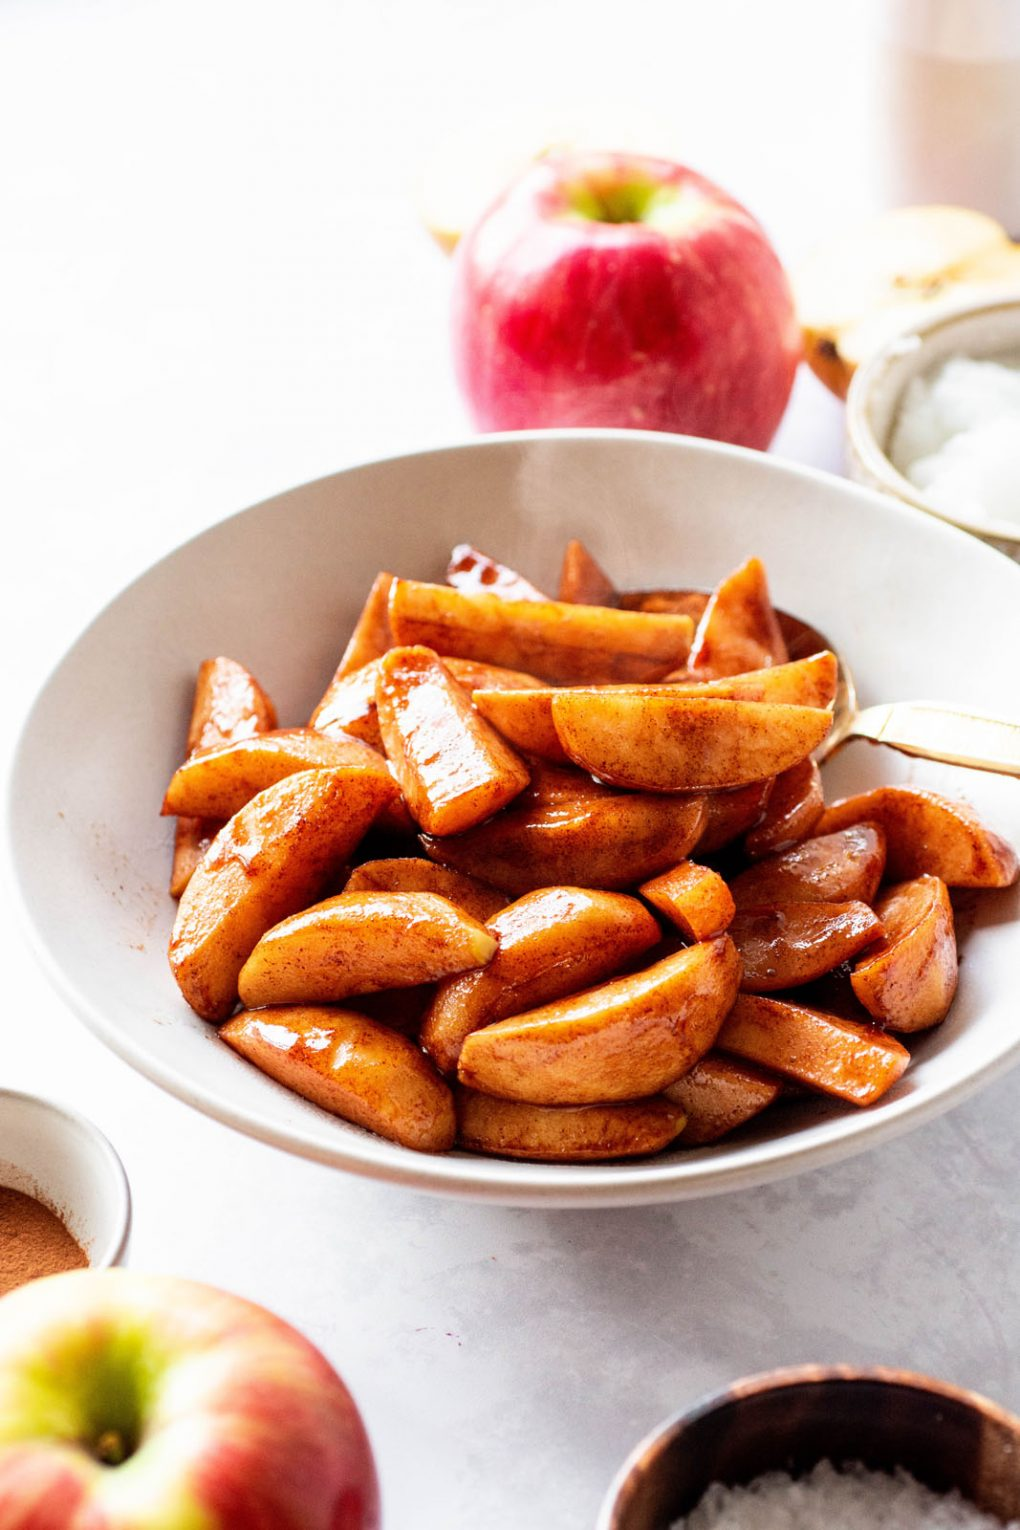 bowl of baked apple slices